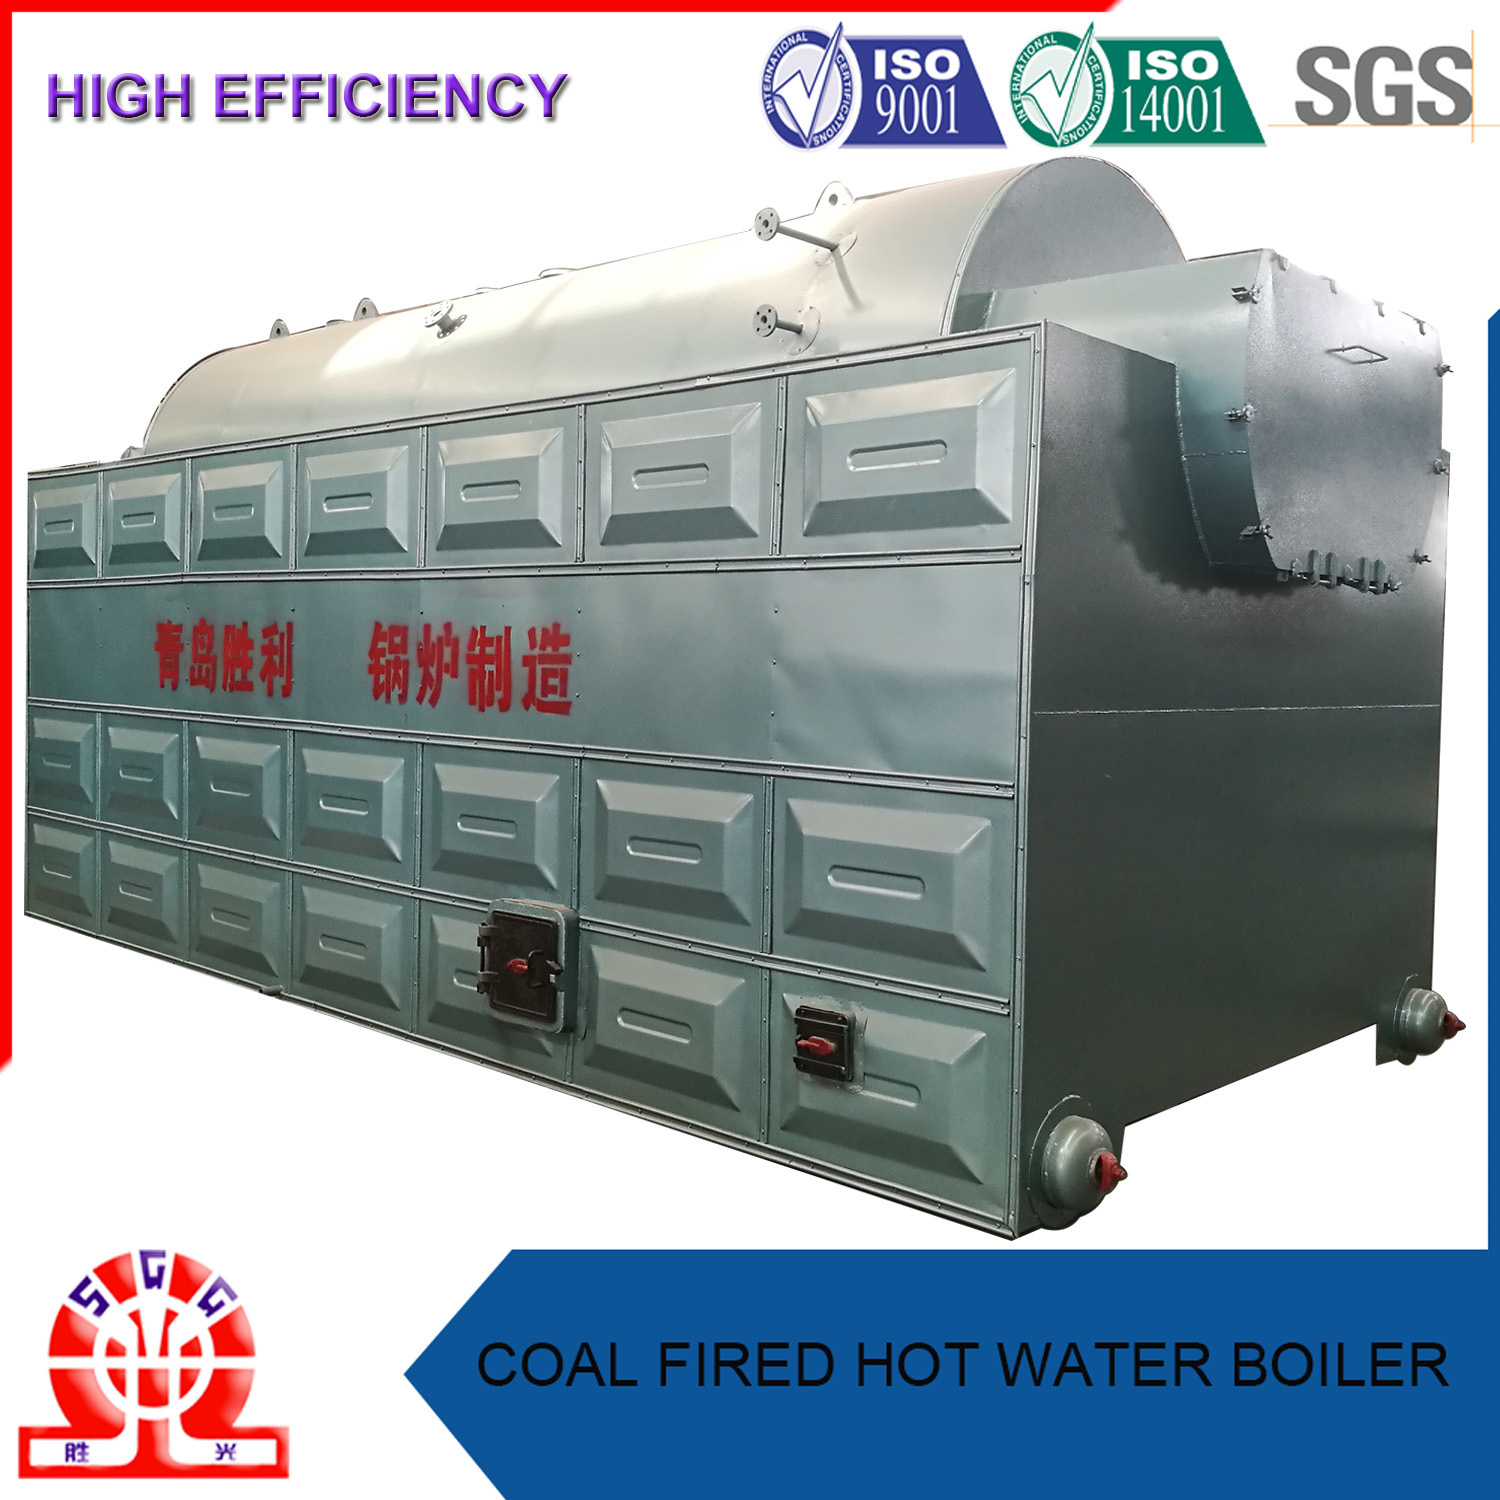 Stunning Most Efficient Steam Boiler Contemporary Electrical